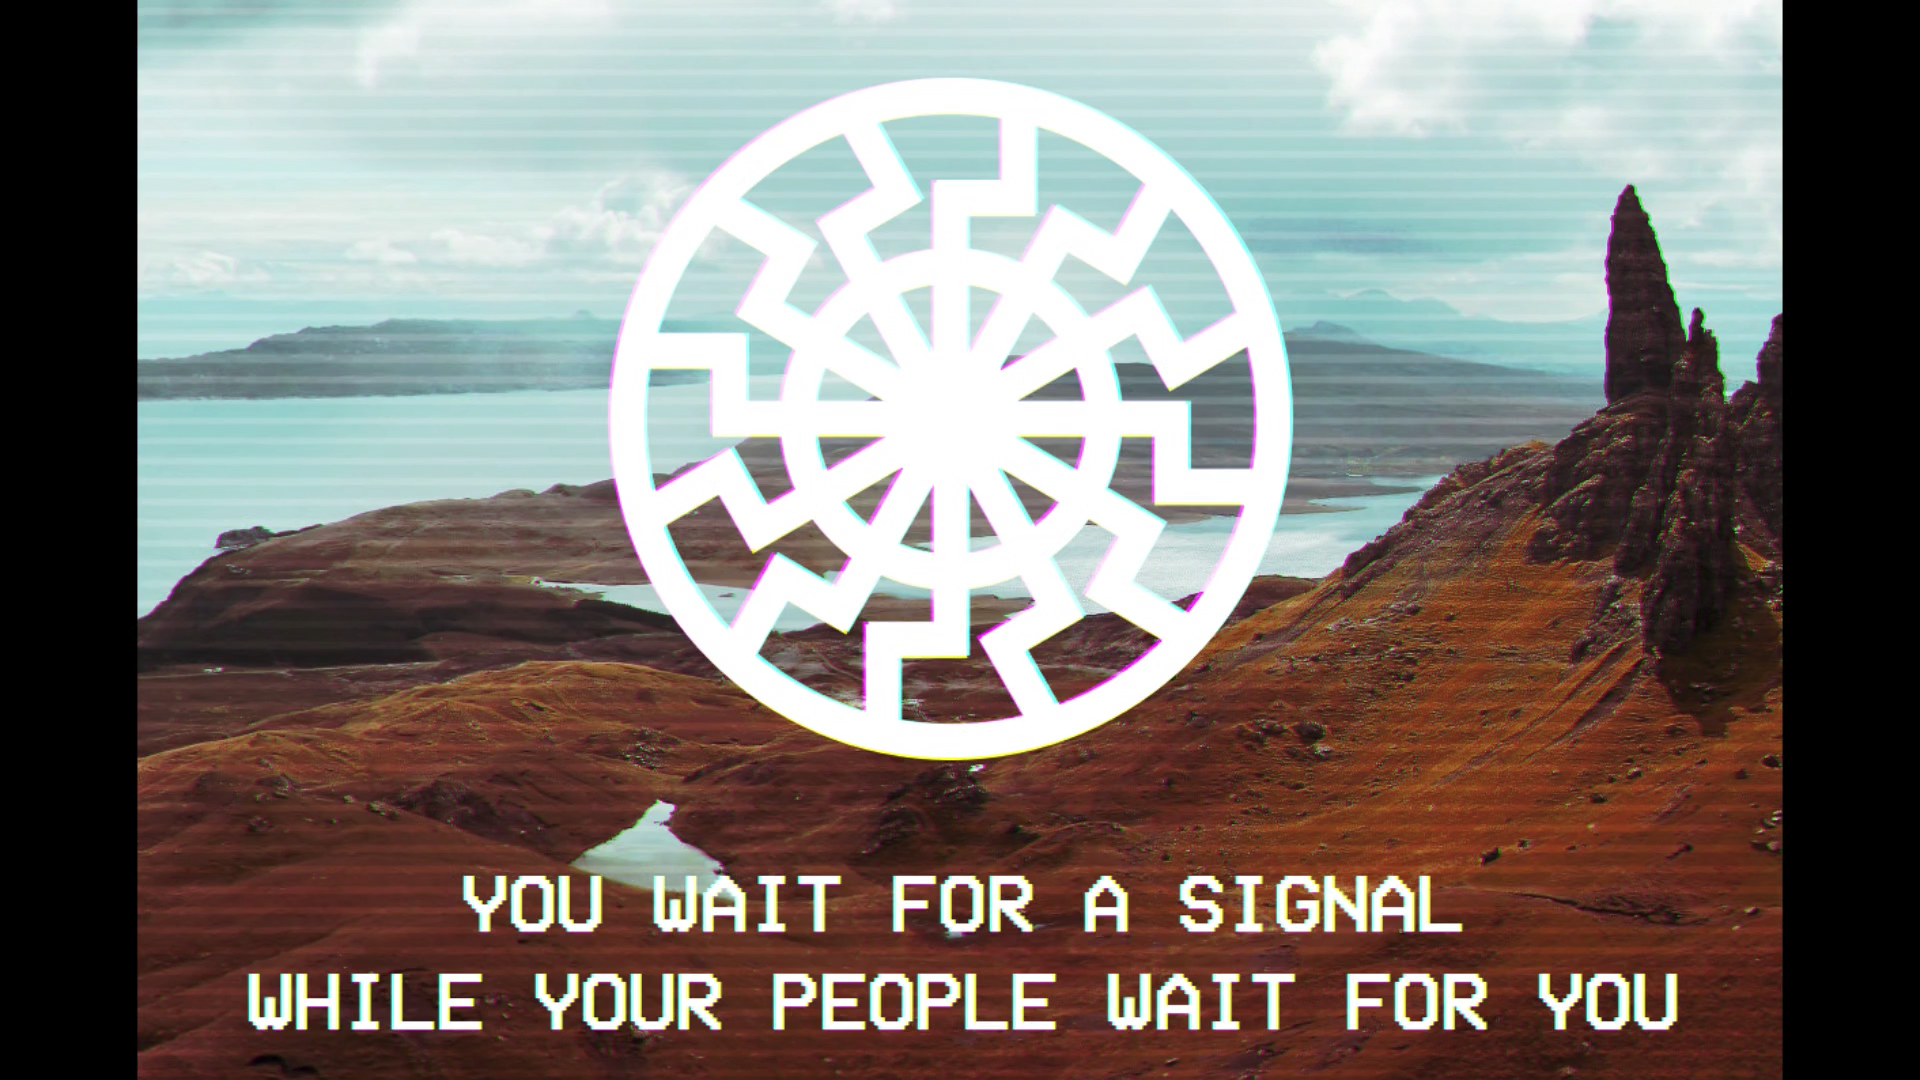 HOW TO ACHIEVE VICTORY